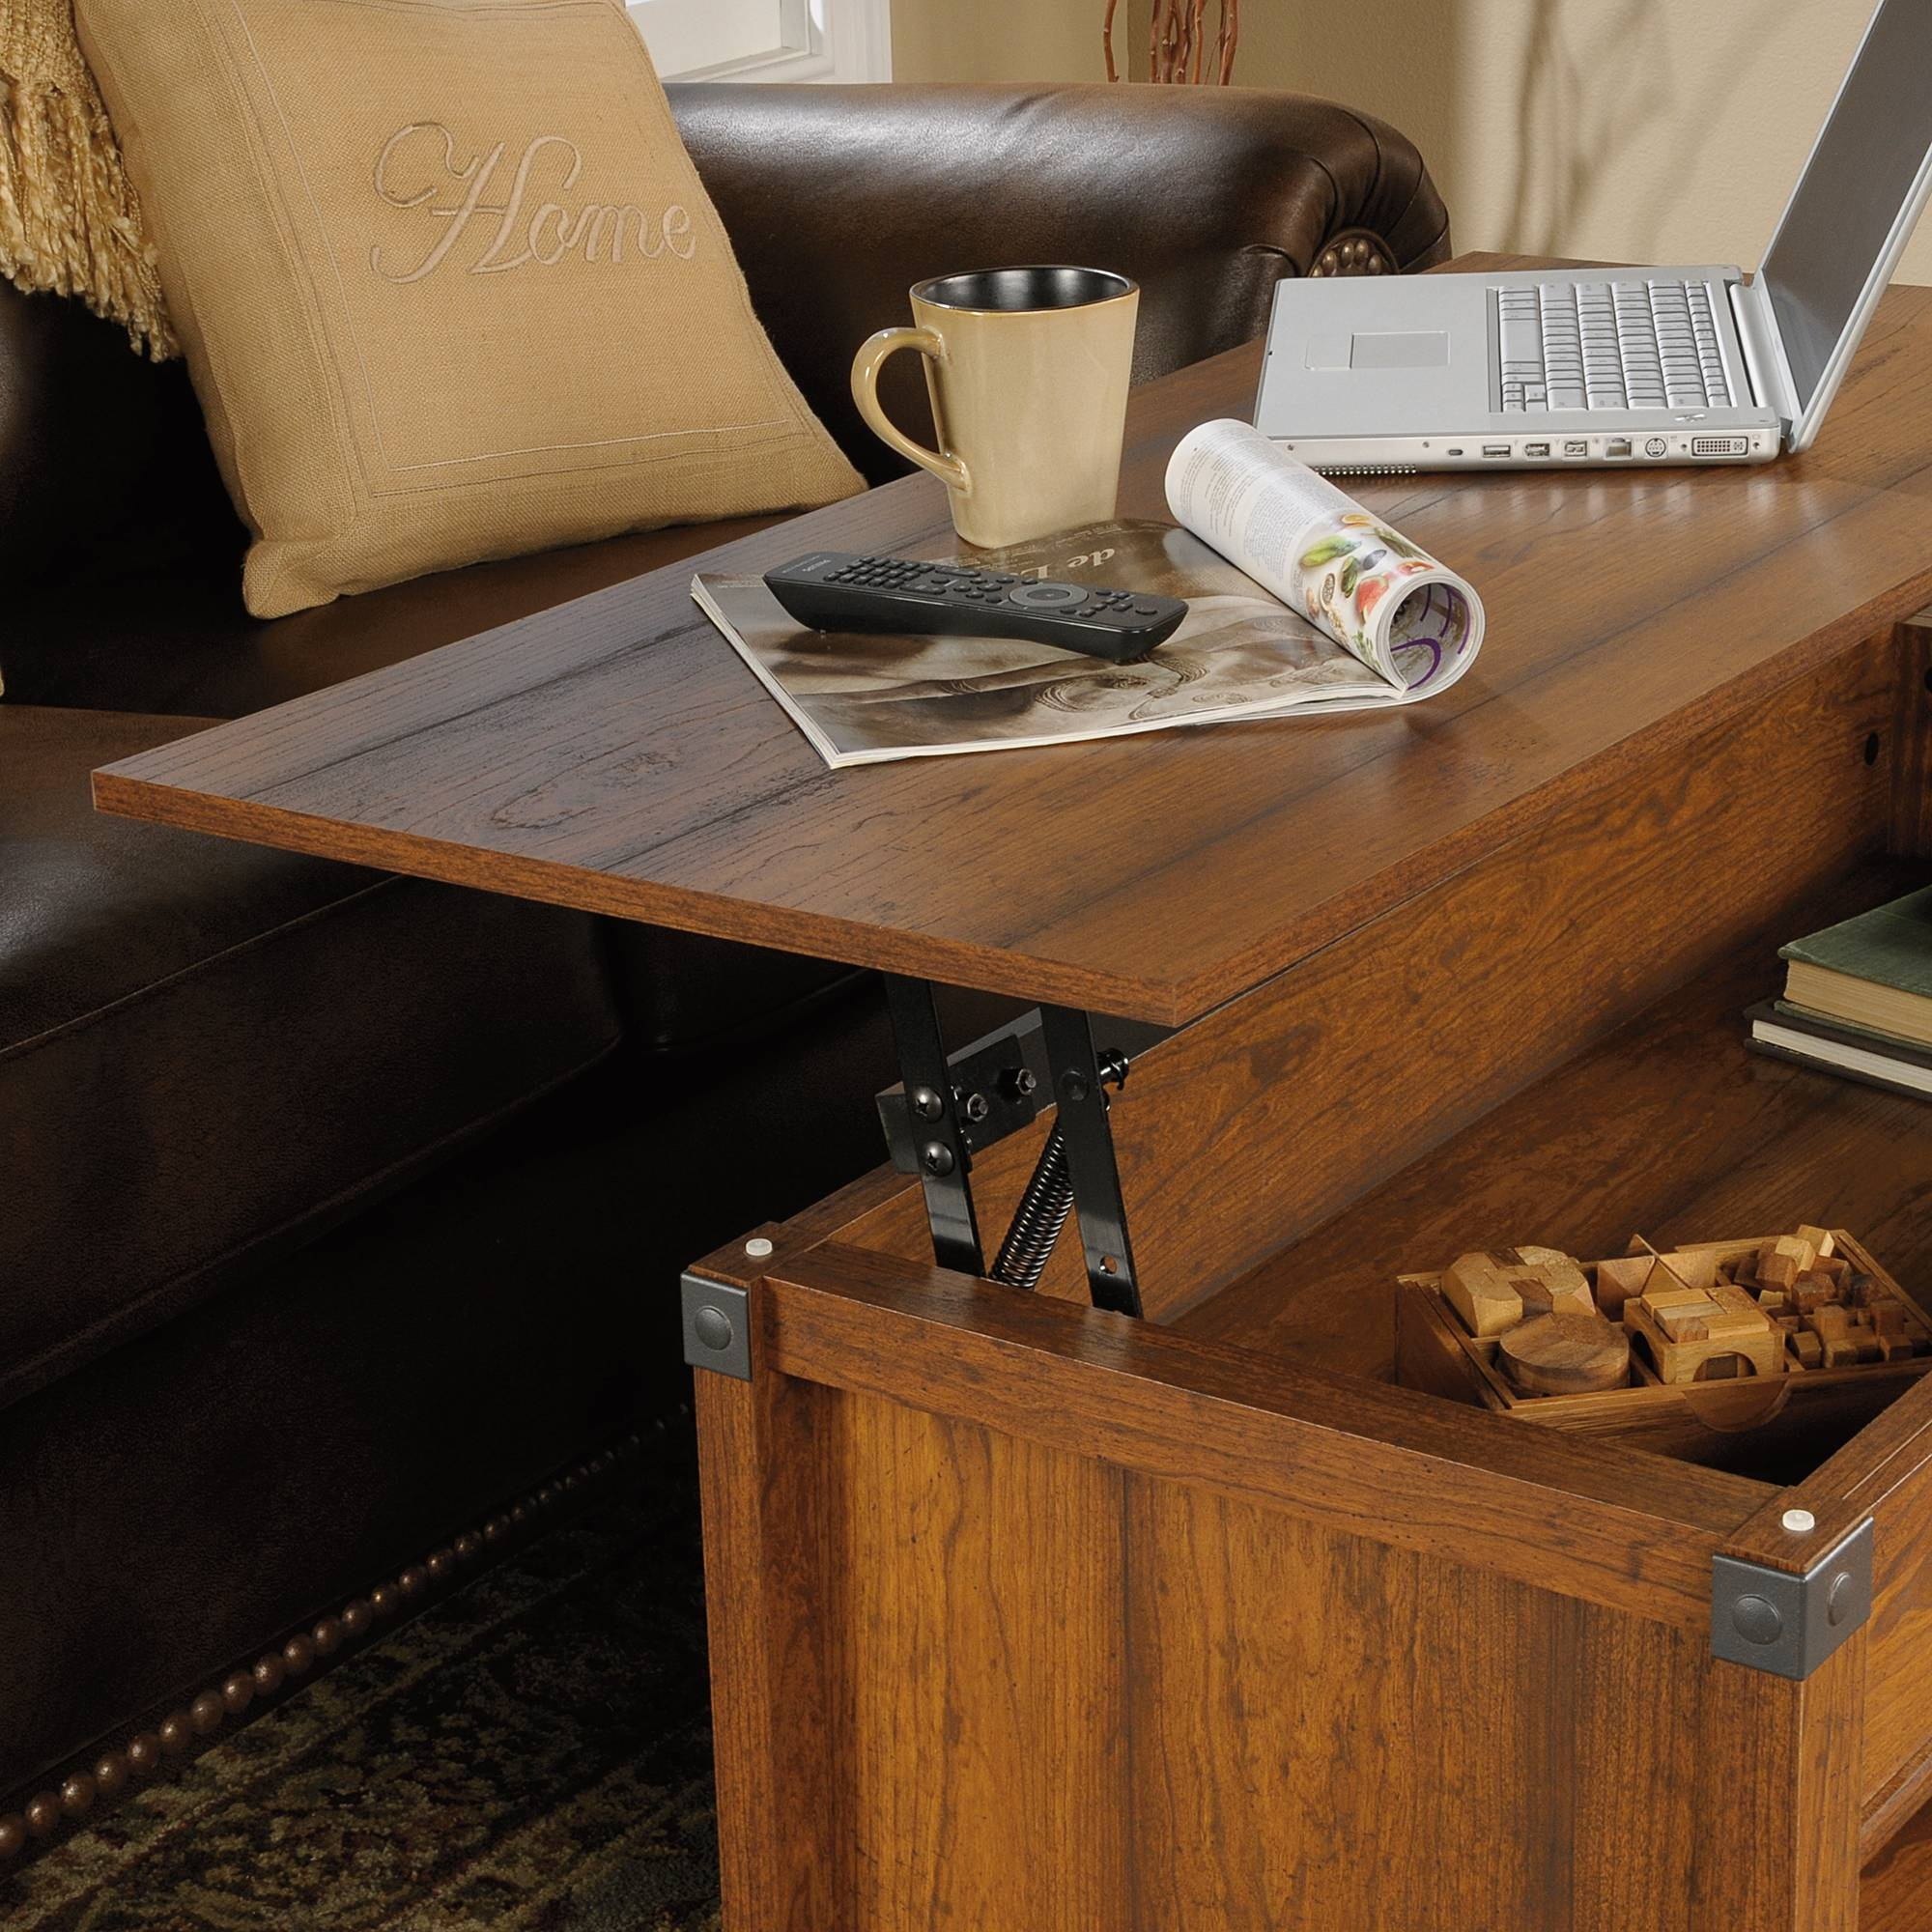 Carson Forge | Lift-Top Coffee Table | 414444 | Sauder inside Waverly Lift Top Coffee Tables (Image 7 of 30)